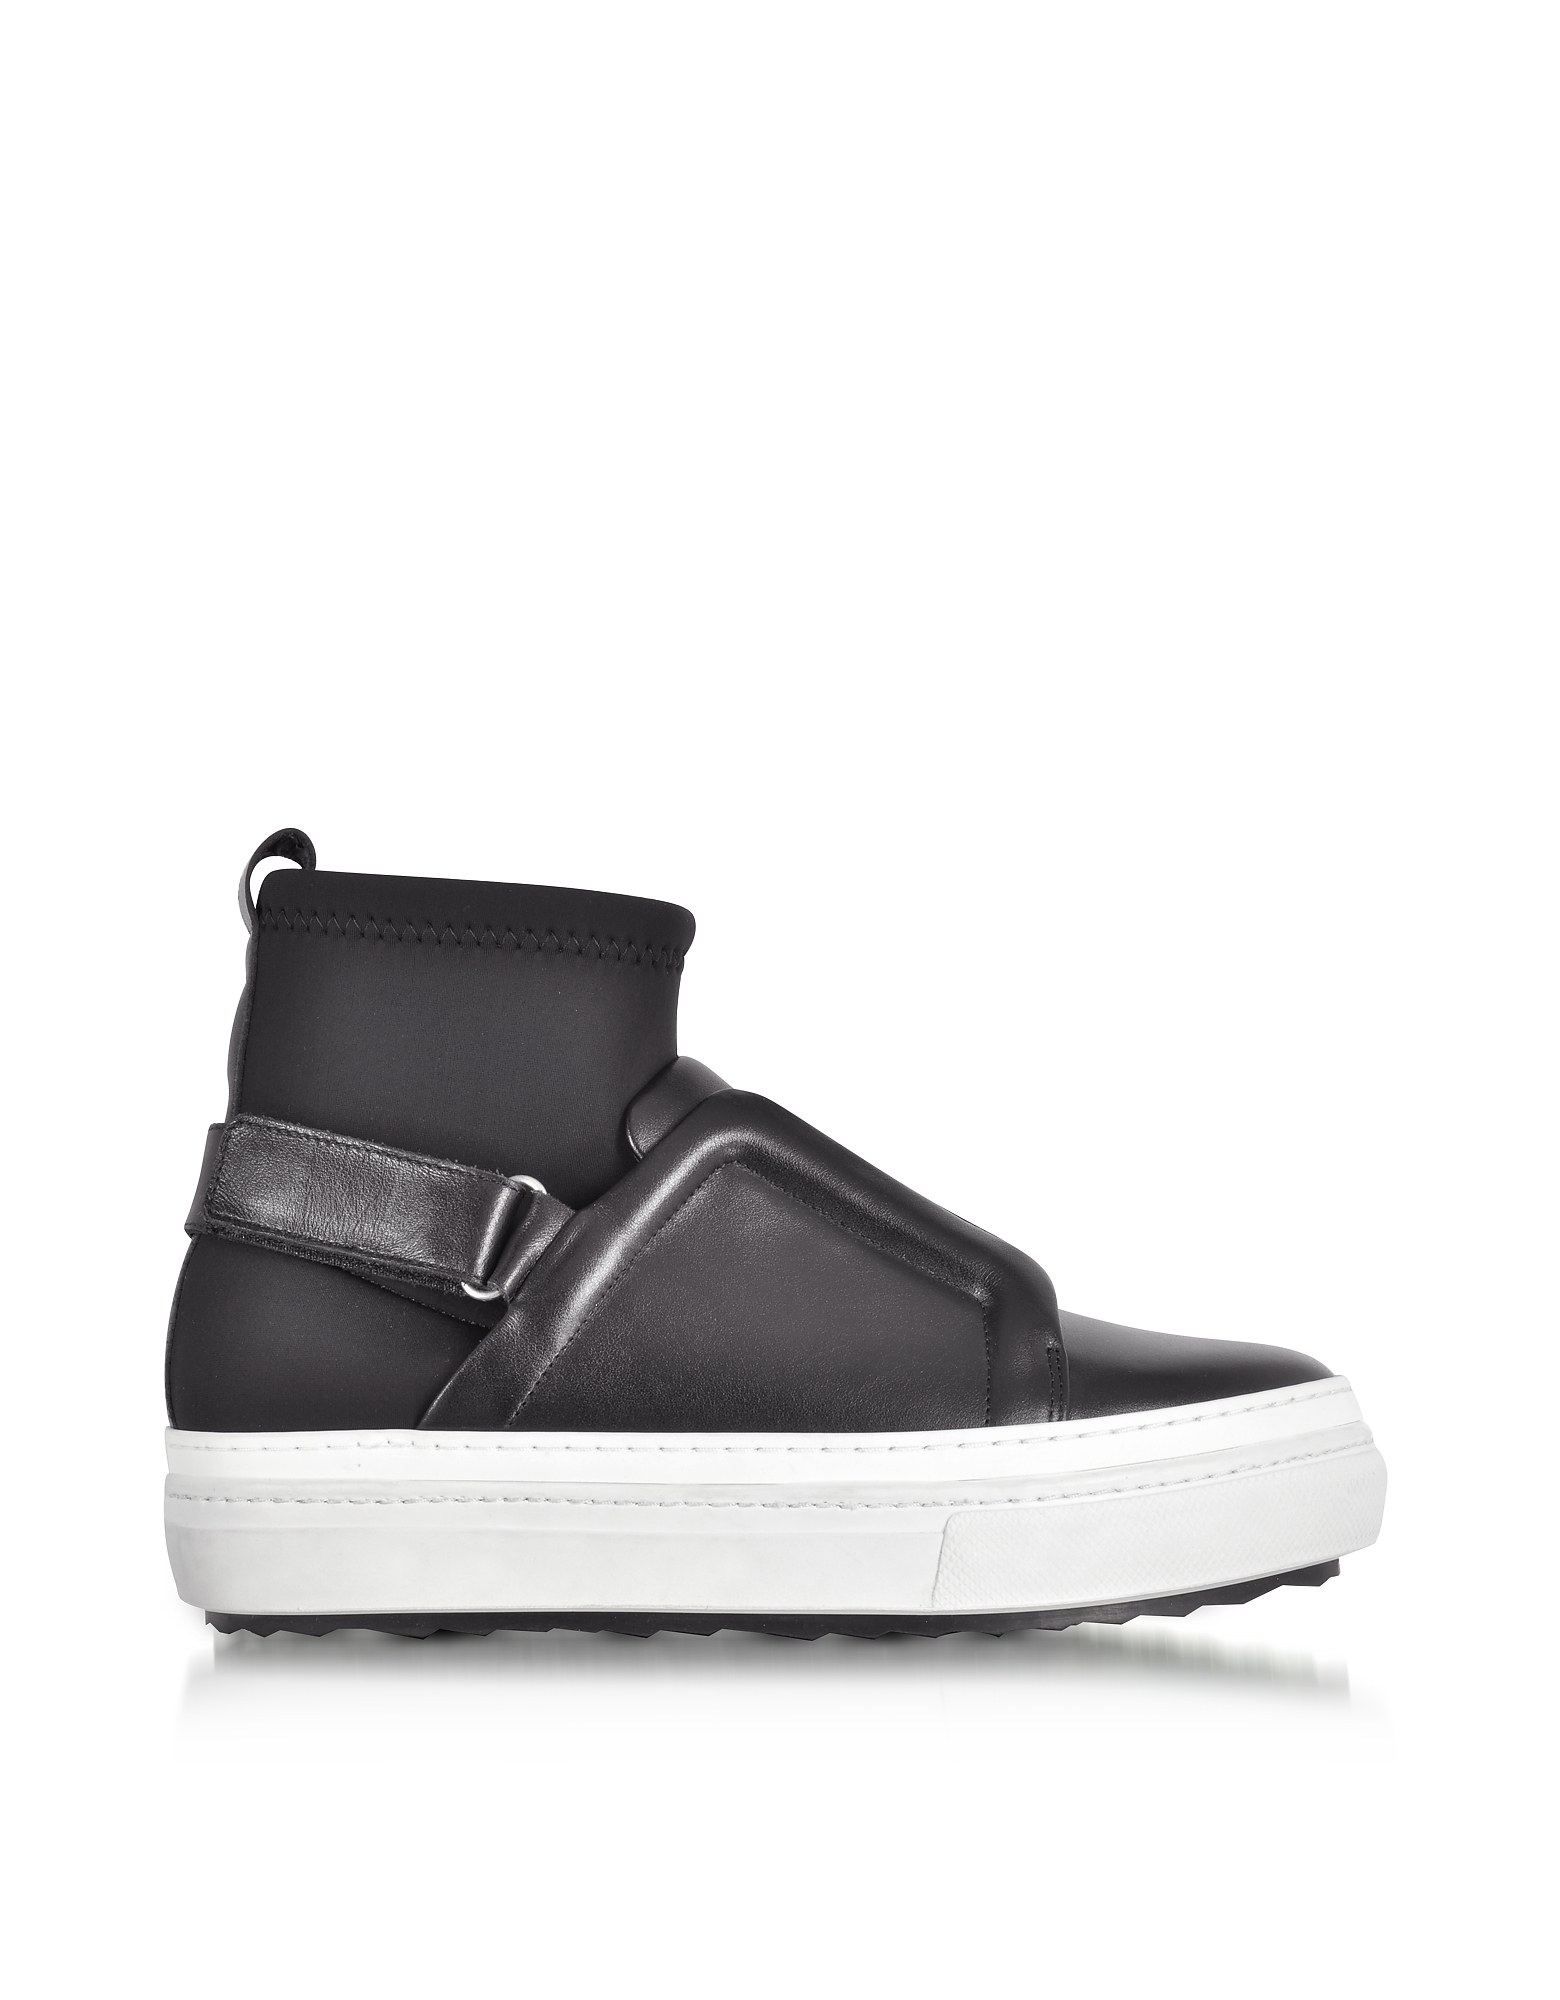 Pierre Hardy Shoes, Slider Fusion Black Neoprene and Leather Sneaker